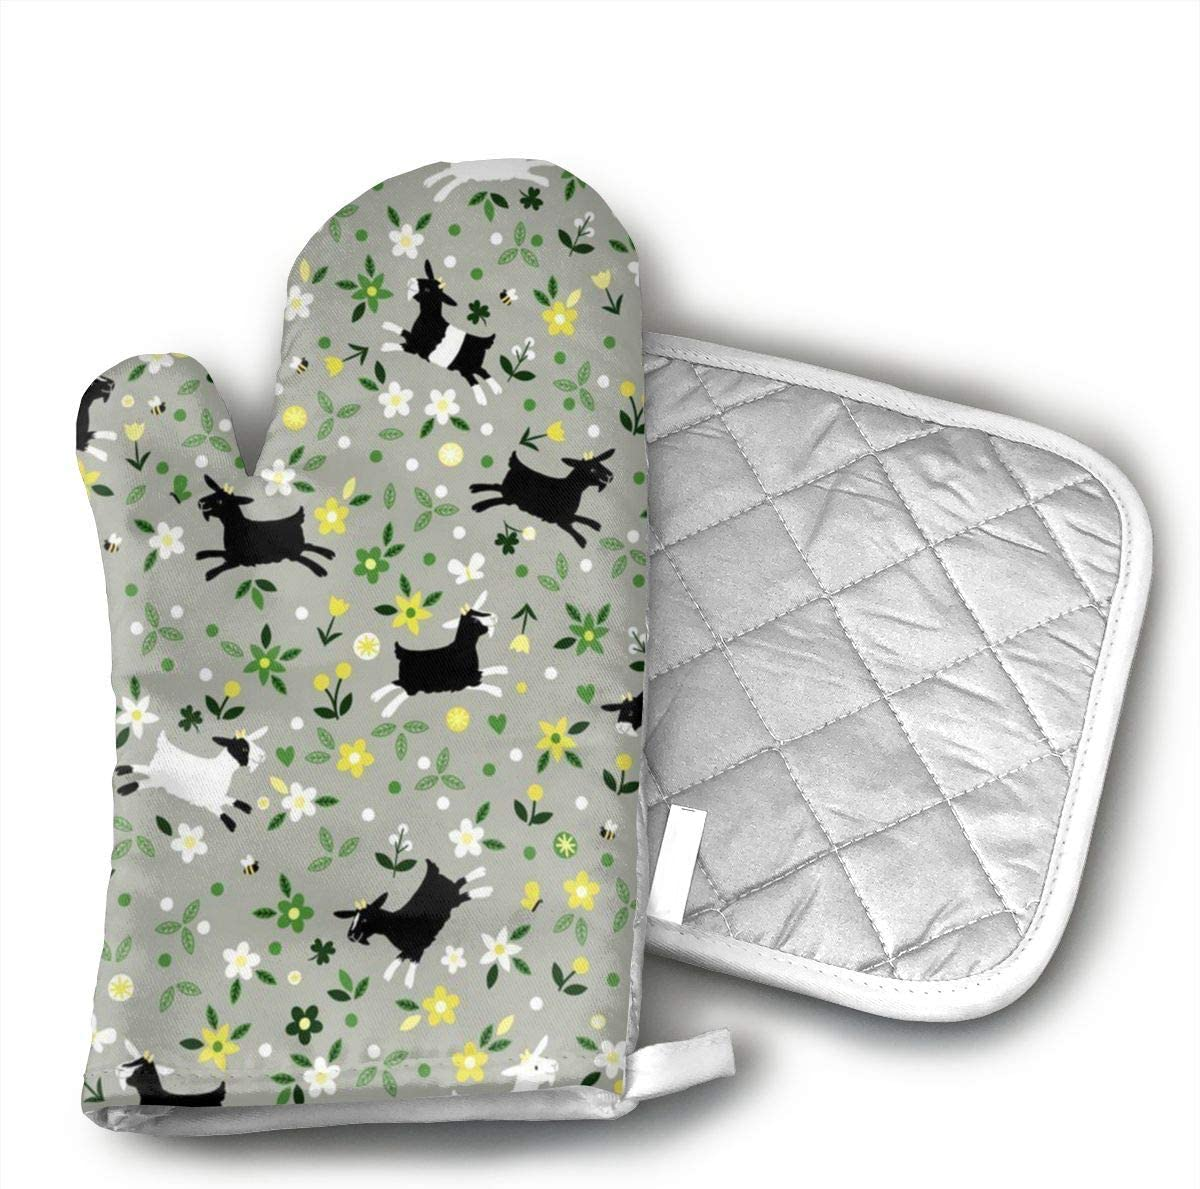 Wiqo9 Goat Frolic Oven Mitts and Pot Holders Kitchen Mitten Cooking Gloves,Cooking, Baking, BBQ.